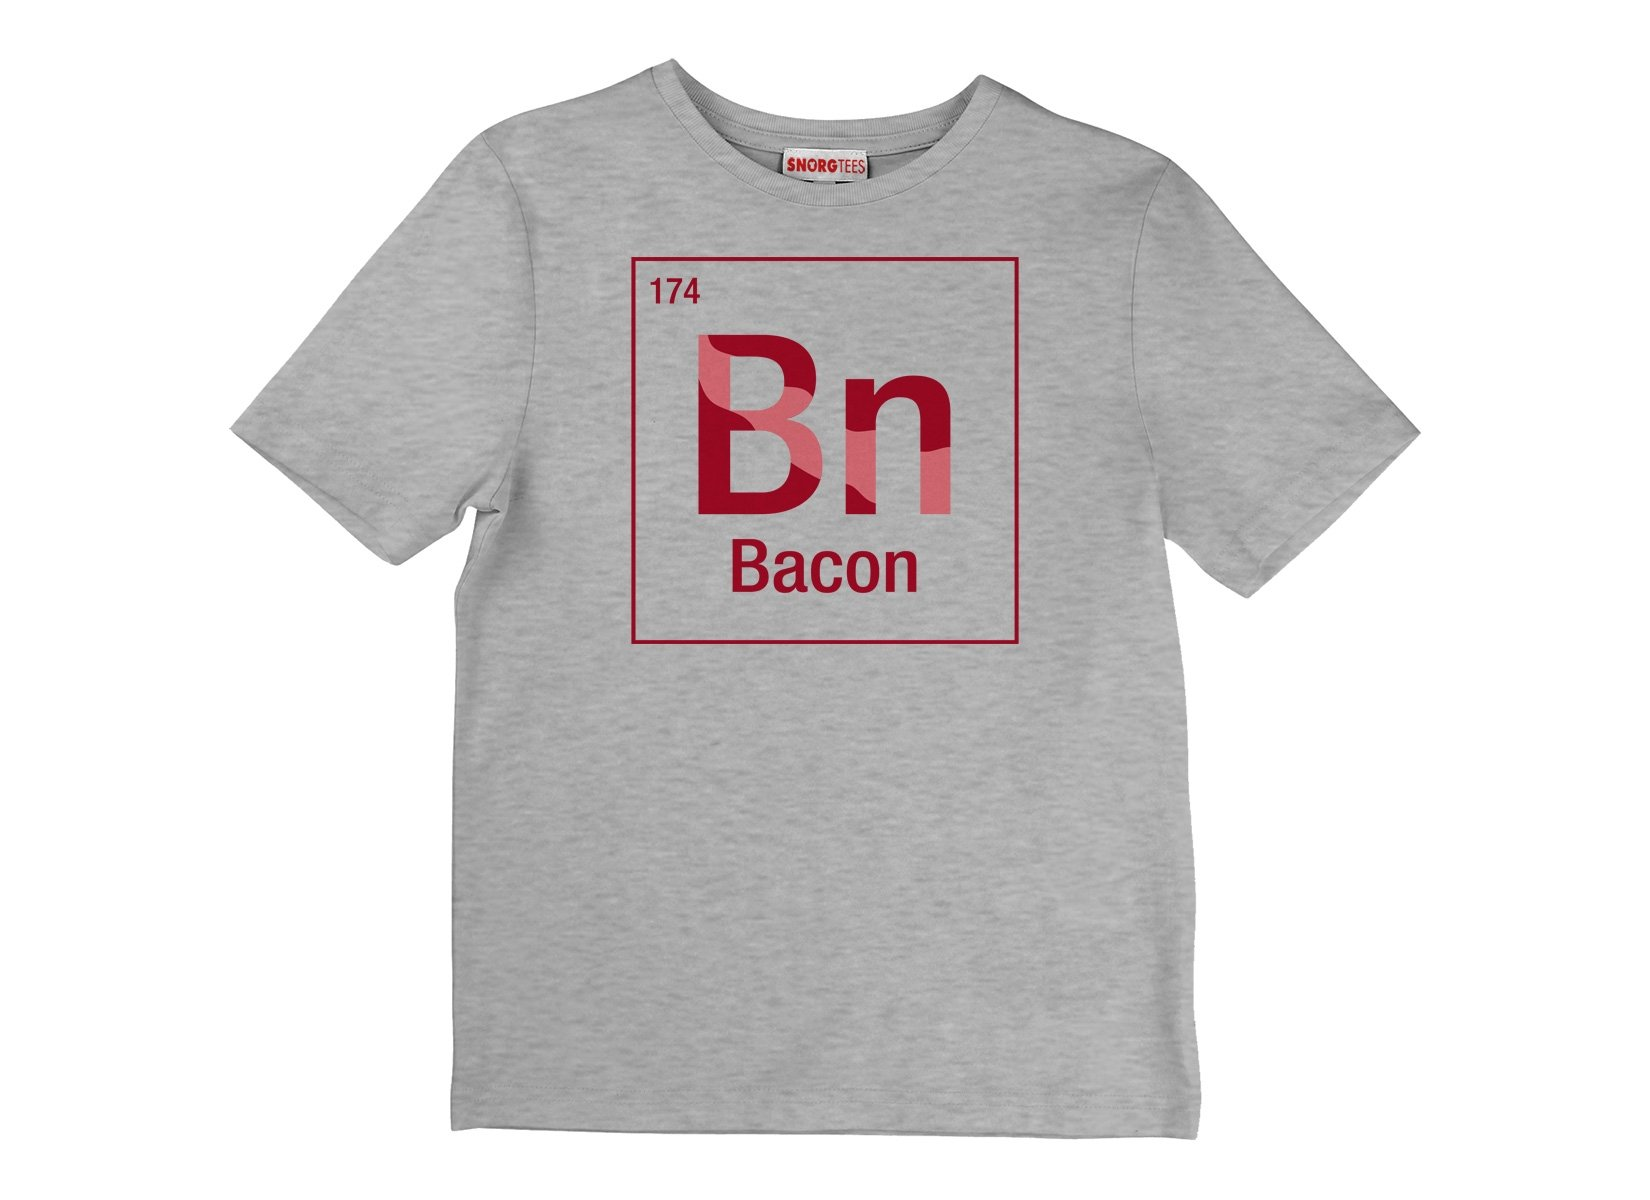 Bacon Element on Kids T-Shirt